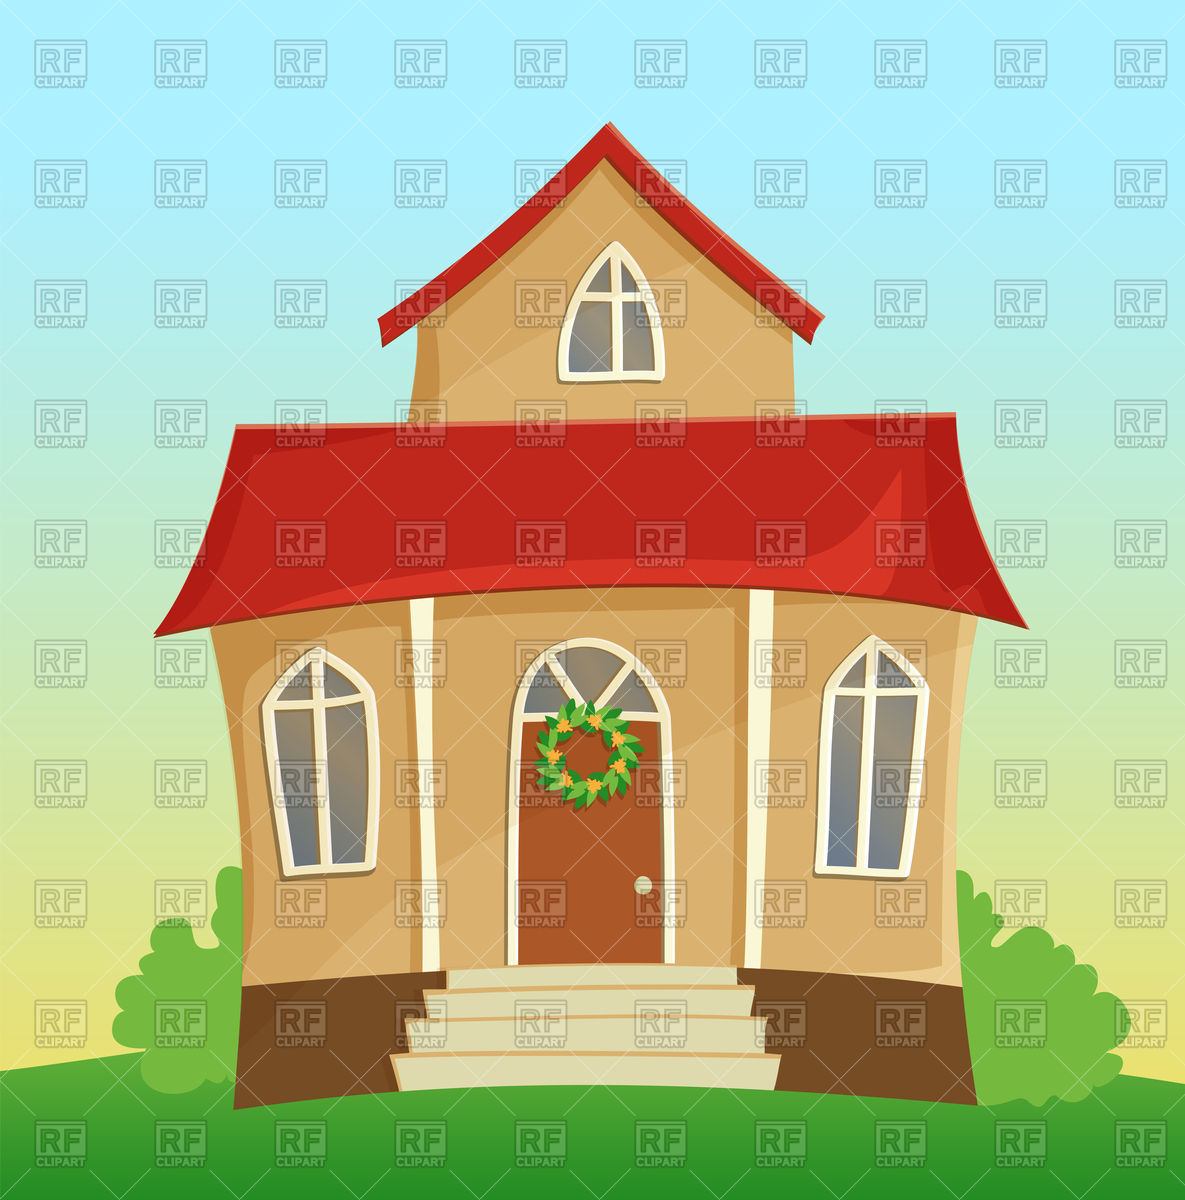 Beautiful suburban cartoon house with red roof Vector Image #88628.